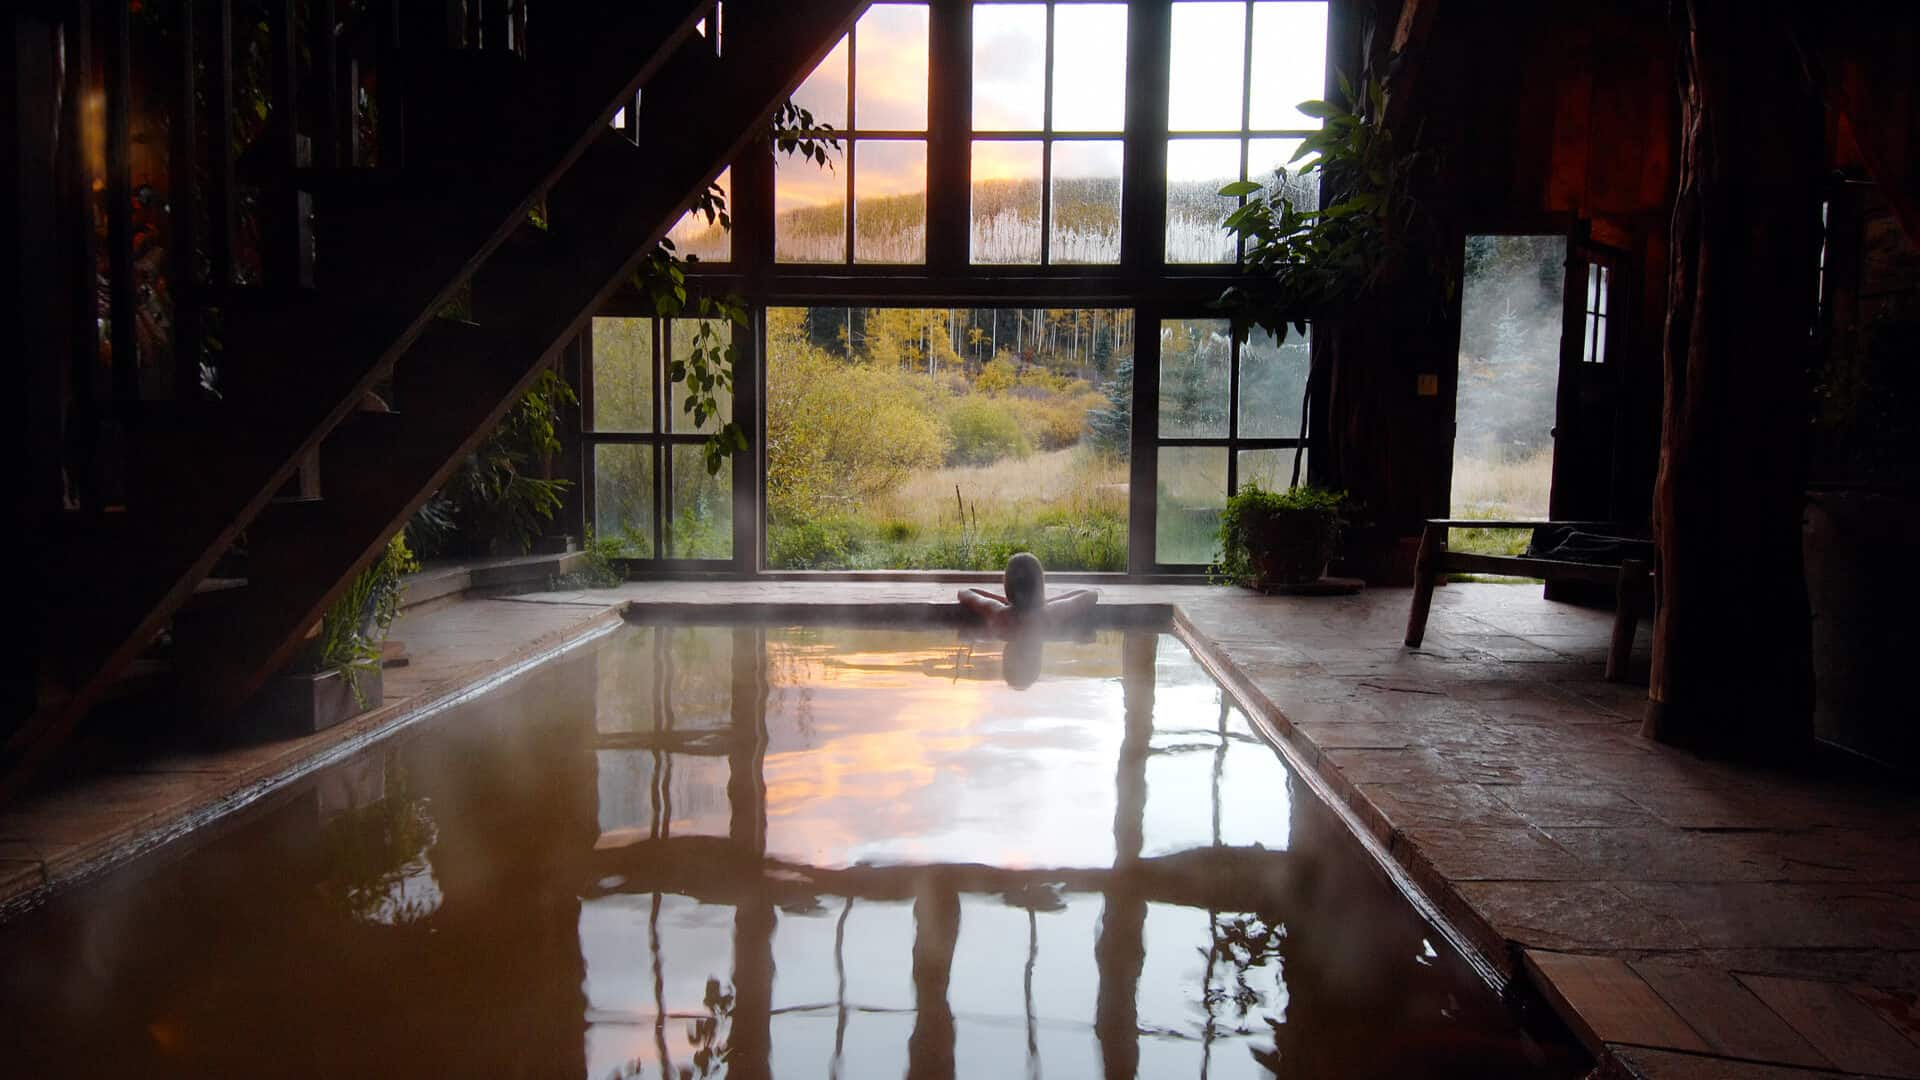 Image of hot springs resort in Dolores